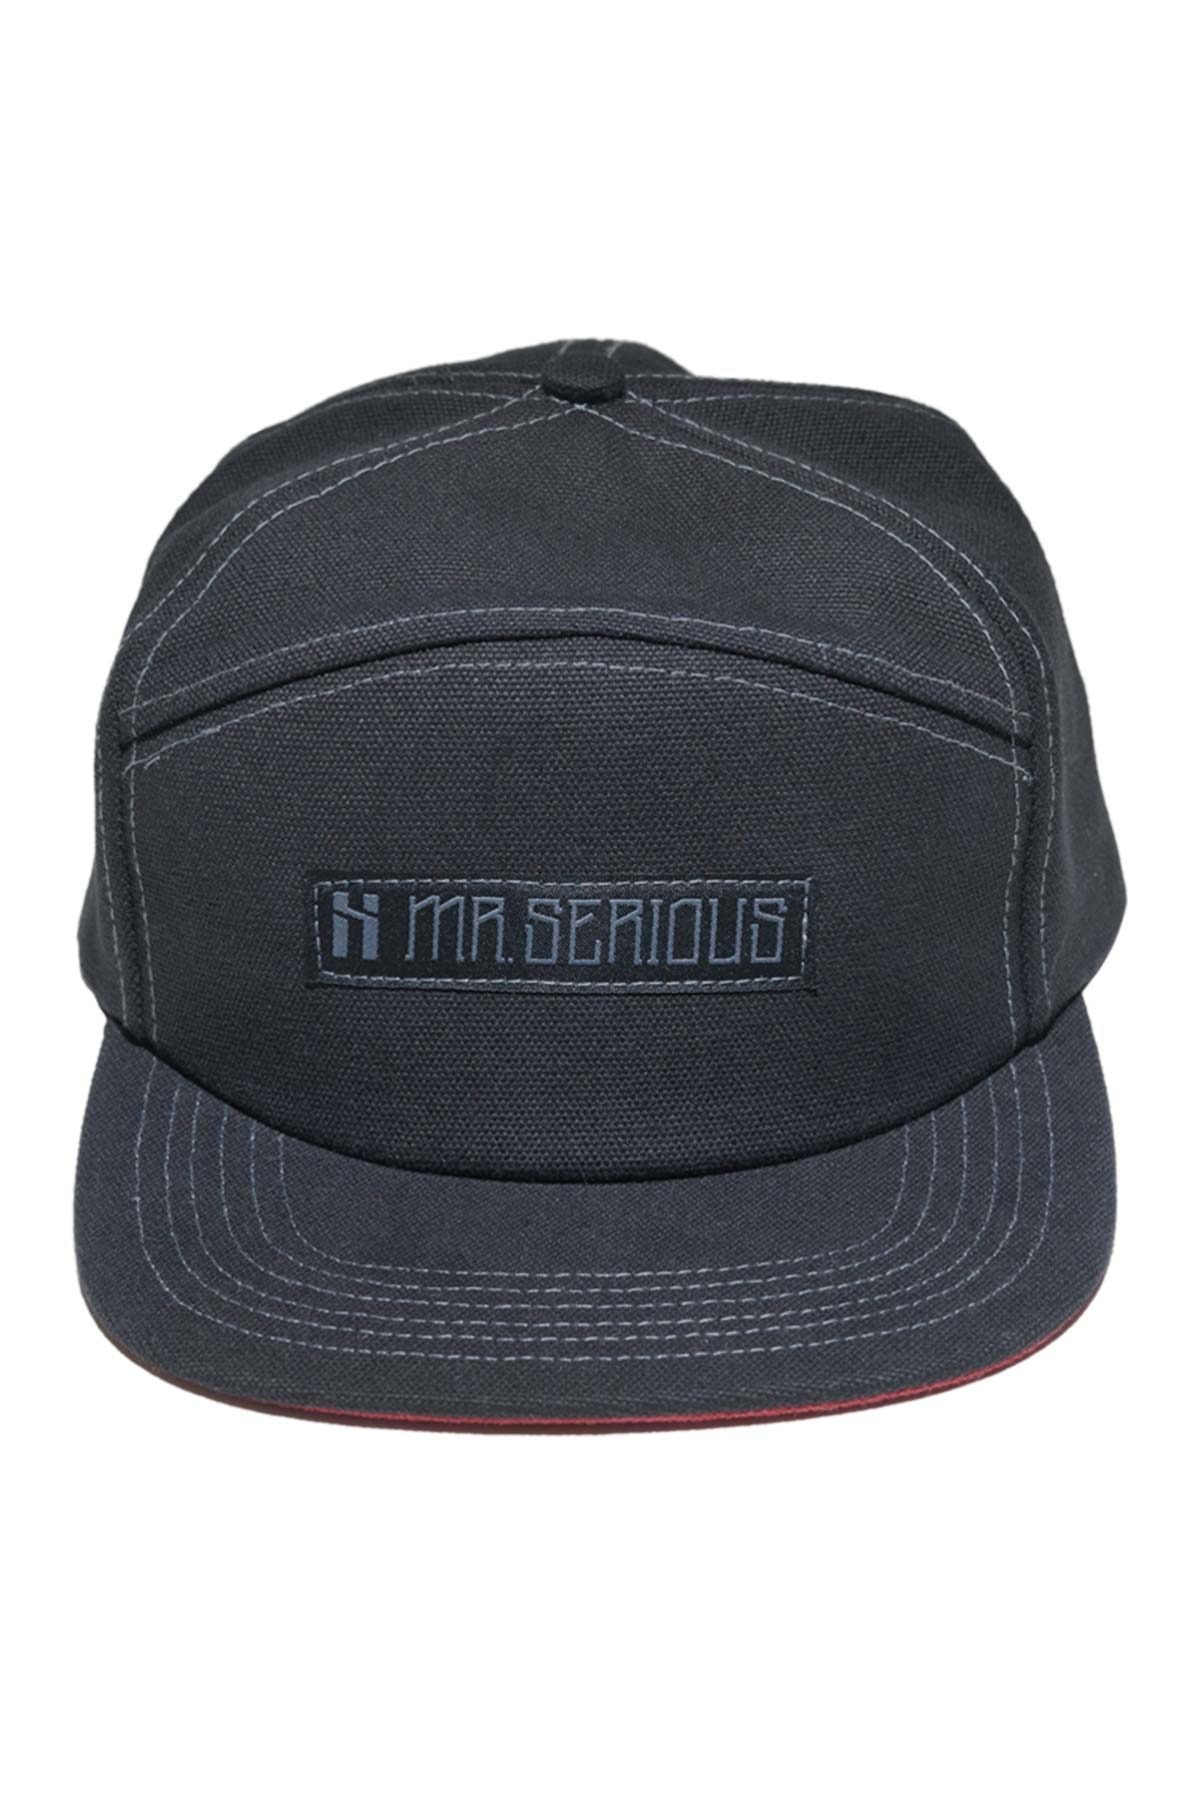 Mr. Serious UNKNOWN Cap